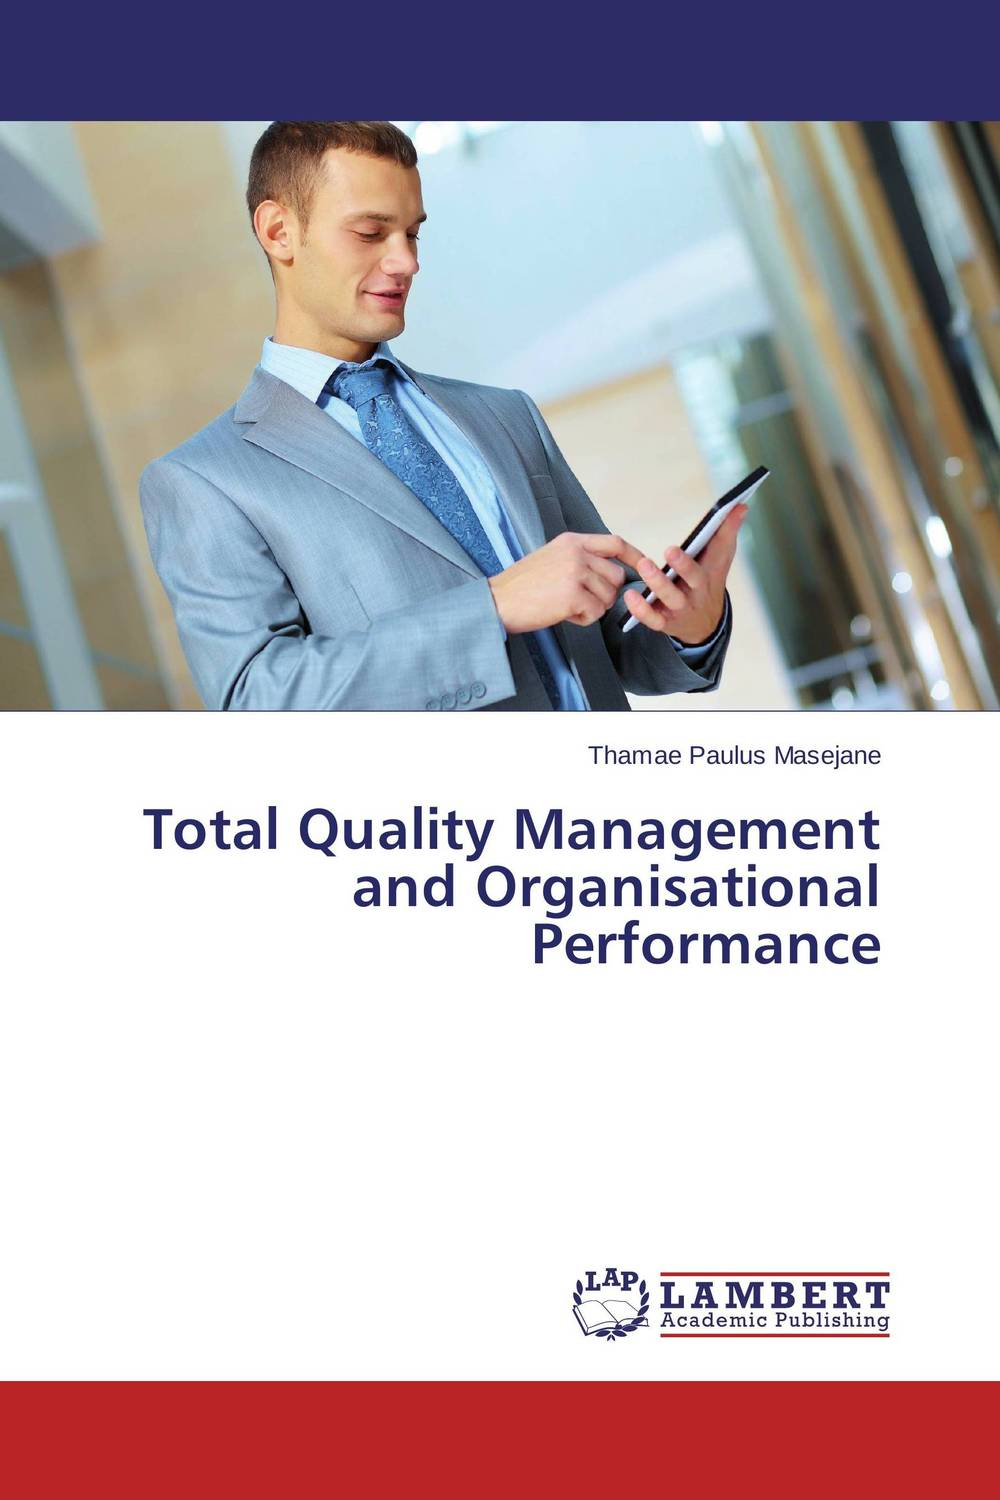 Total Quality Management and Organisational Performance dr irrenpreet singh sanghotra dr prem kumar and dr paramjeet kaur dhindsa quality management practices and organisational performance